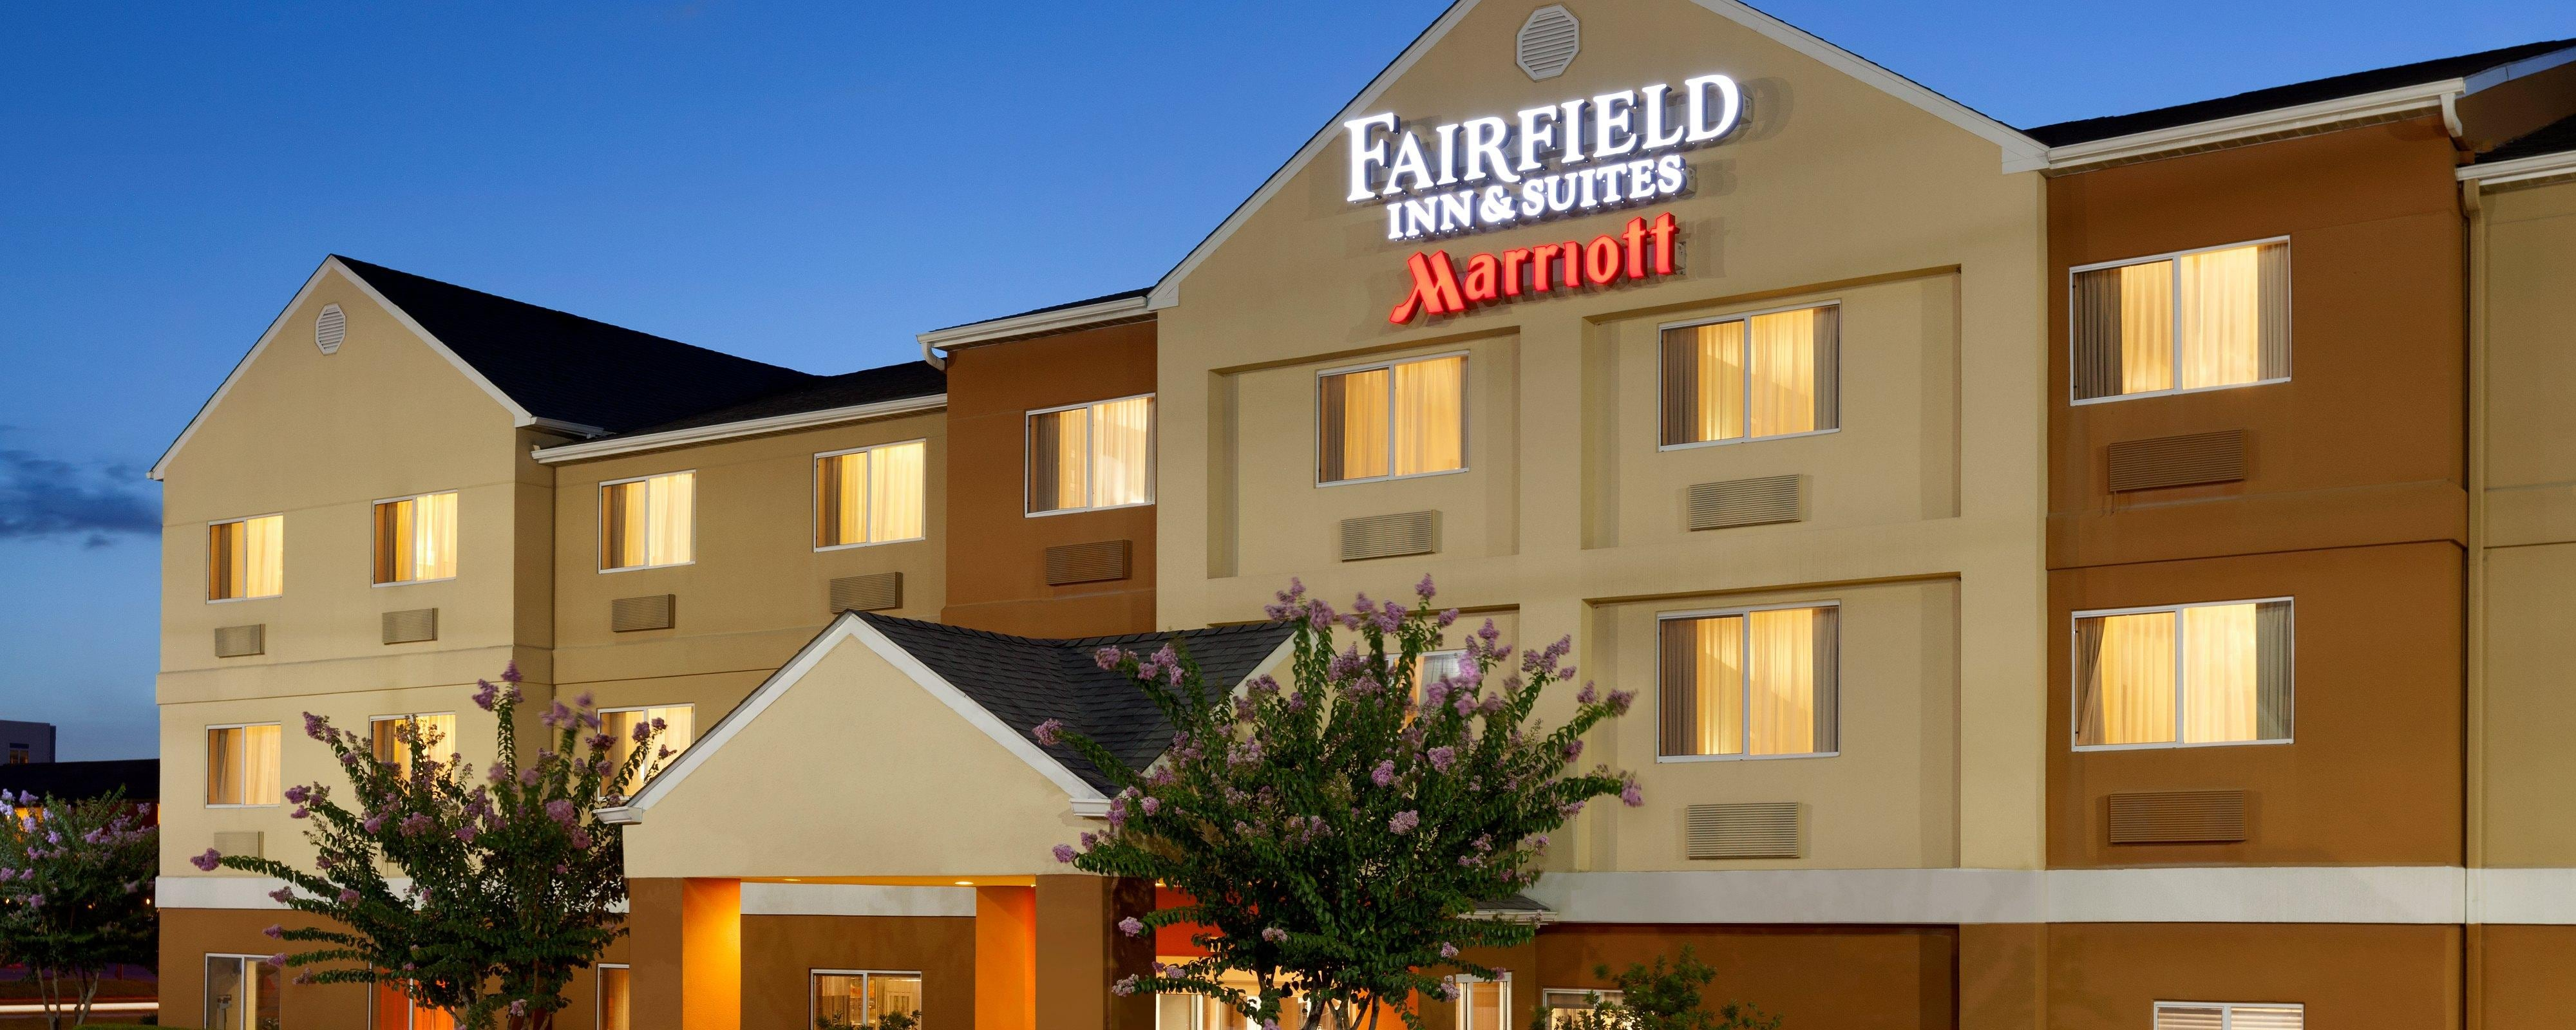 Hotels In Bryan College Station Fairfield Inn Suites